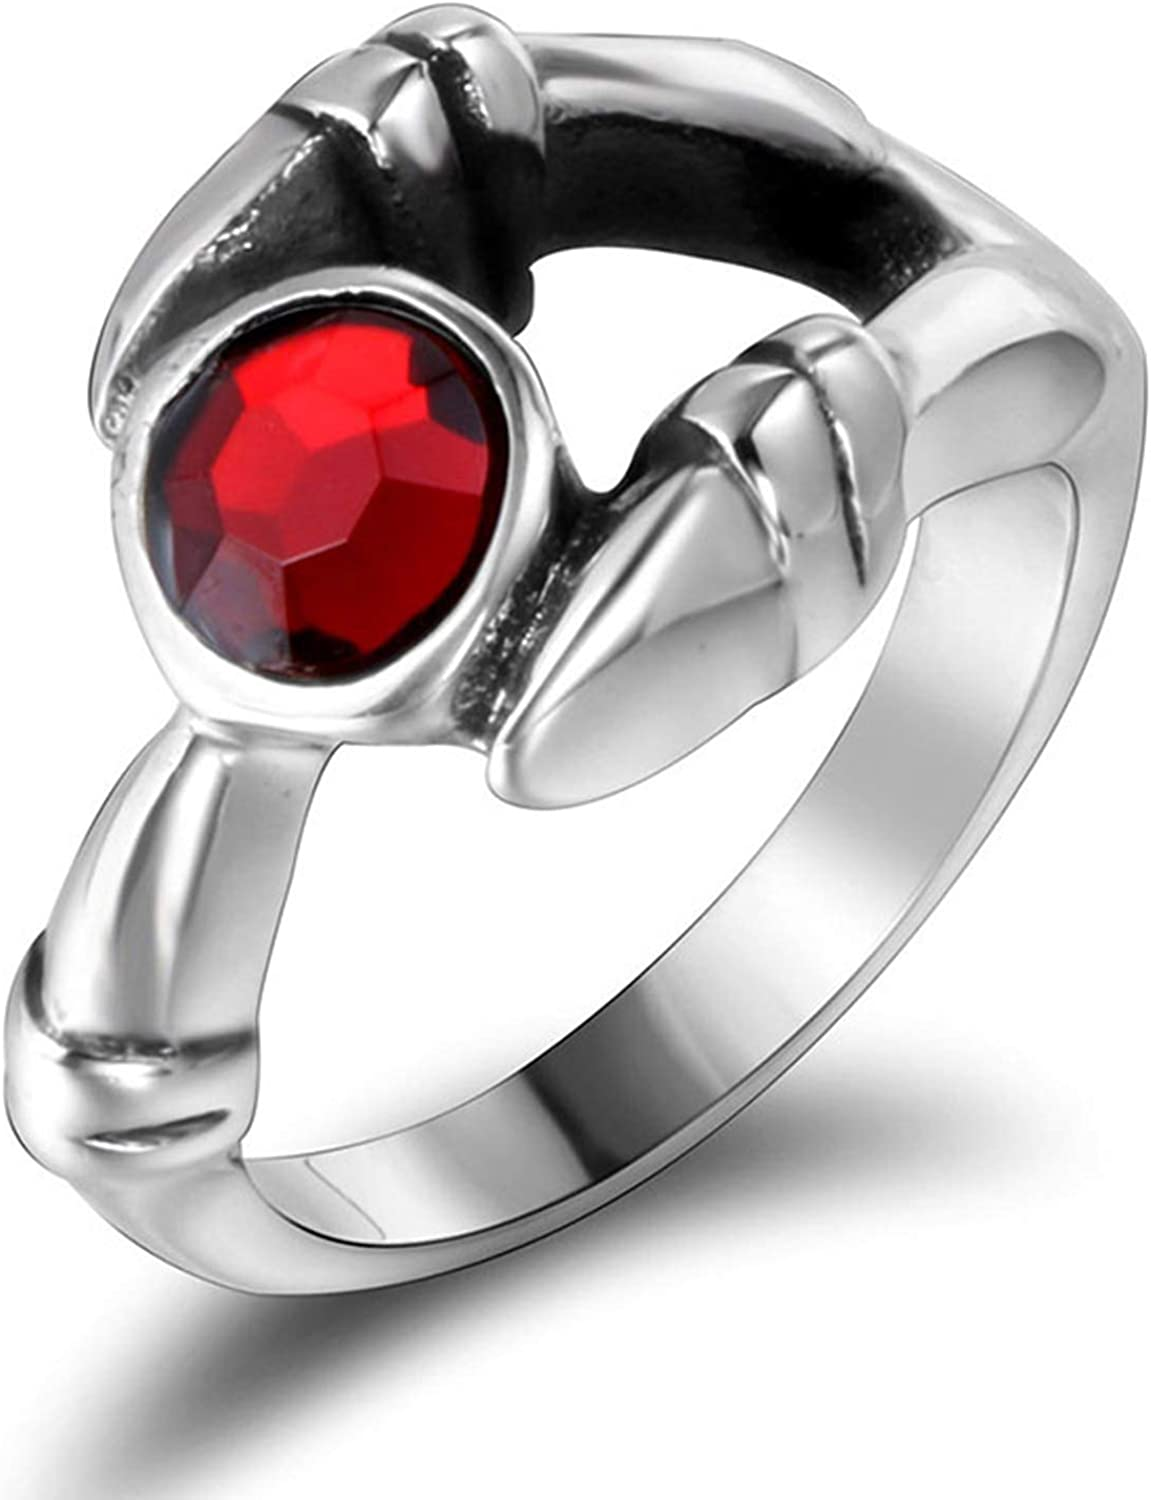 NA Stainless Steel Ring Women Claw Silver Red Ring Size 7-11